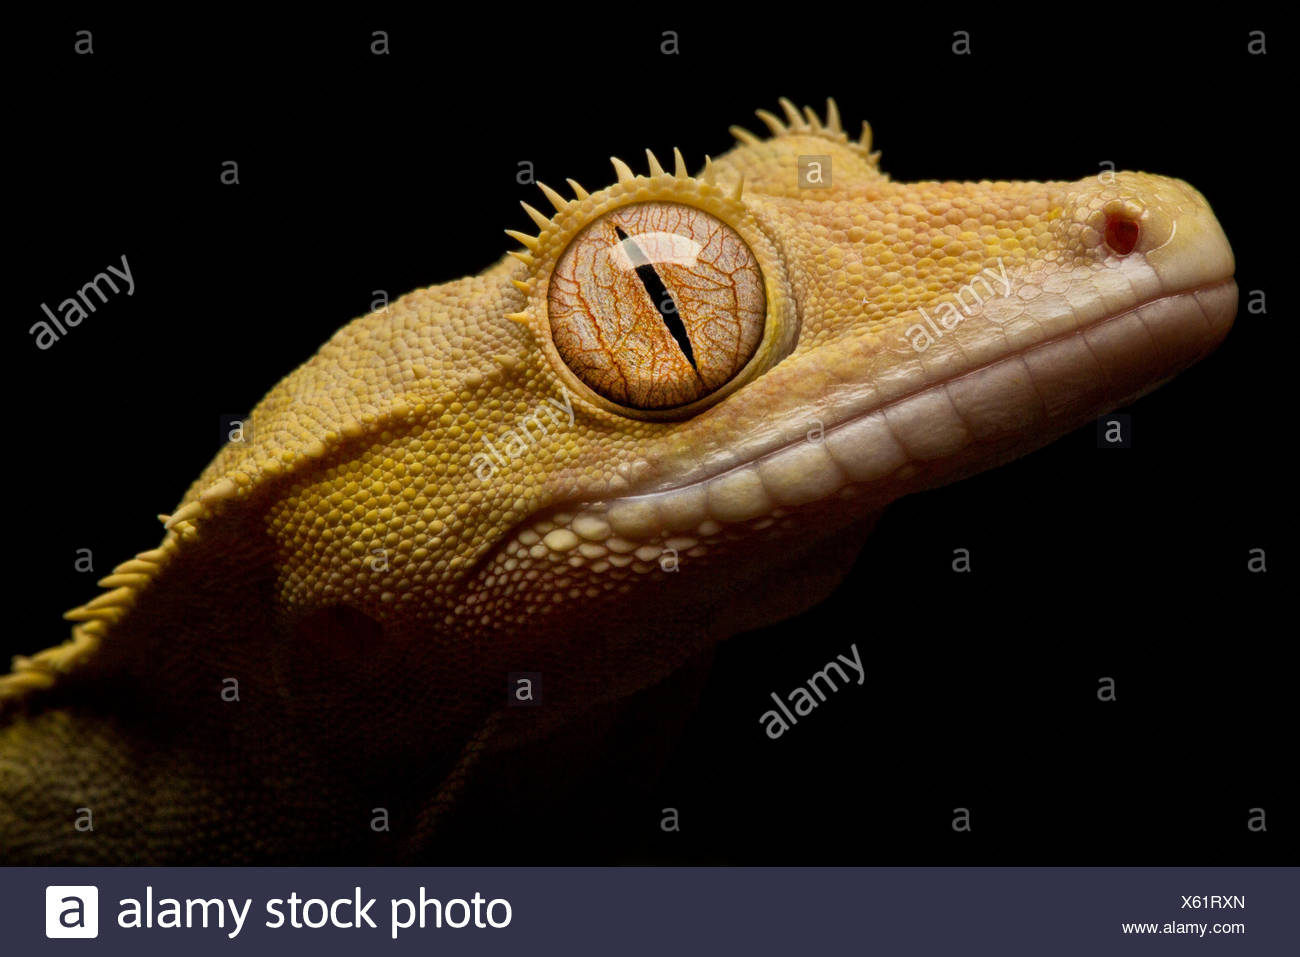 Close up portrait of a Crested Gecko, Correlophus ciliatus. - Stock Image